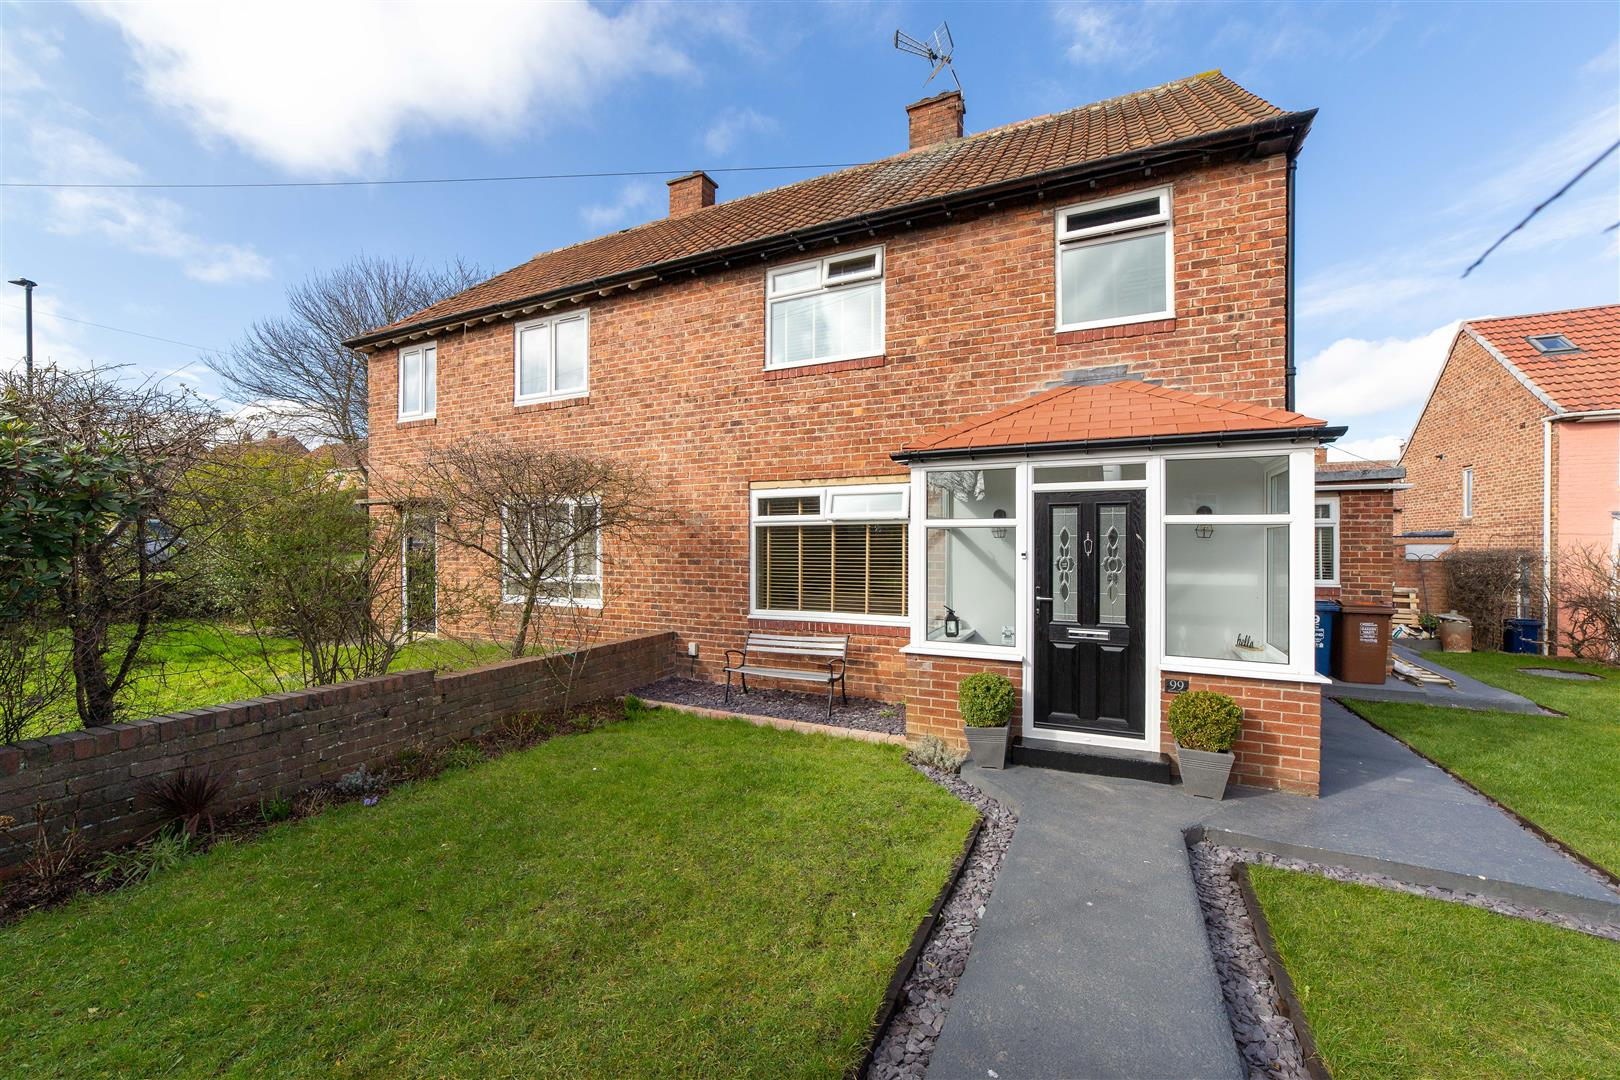 3 bed semi-detached house for sale in Burnfoot Way, Kenton  - Property Image 1